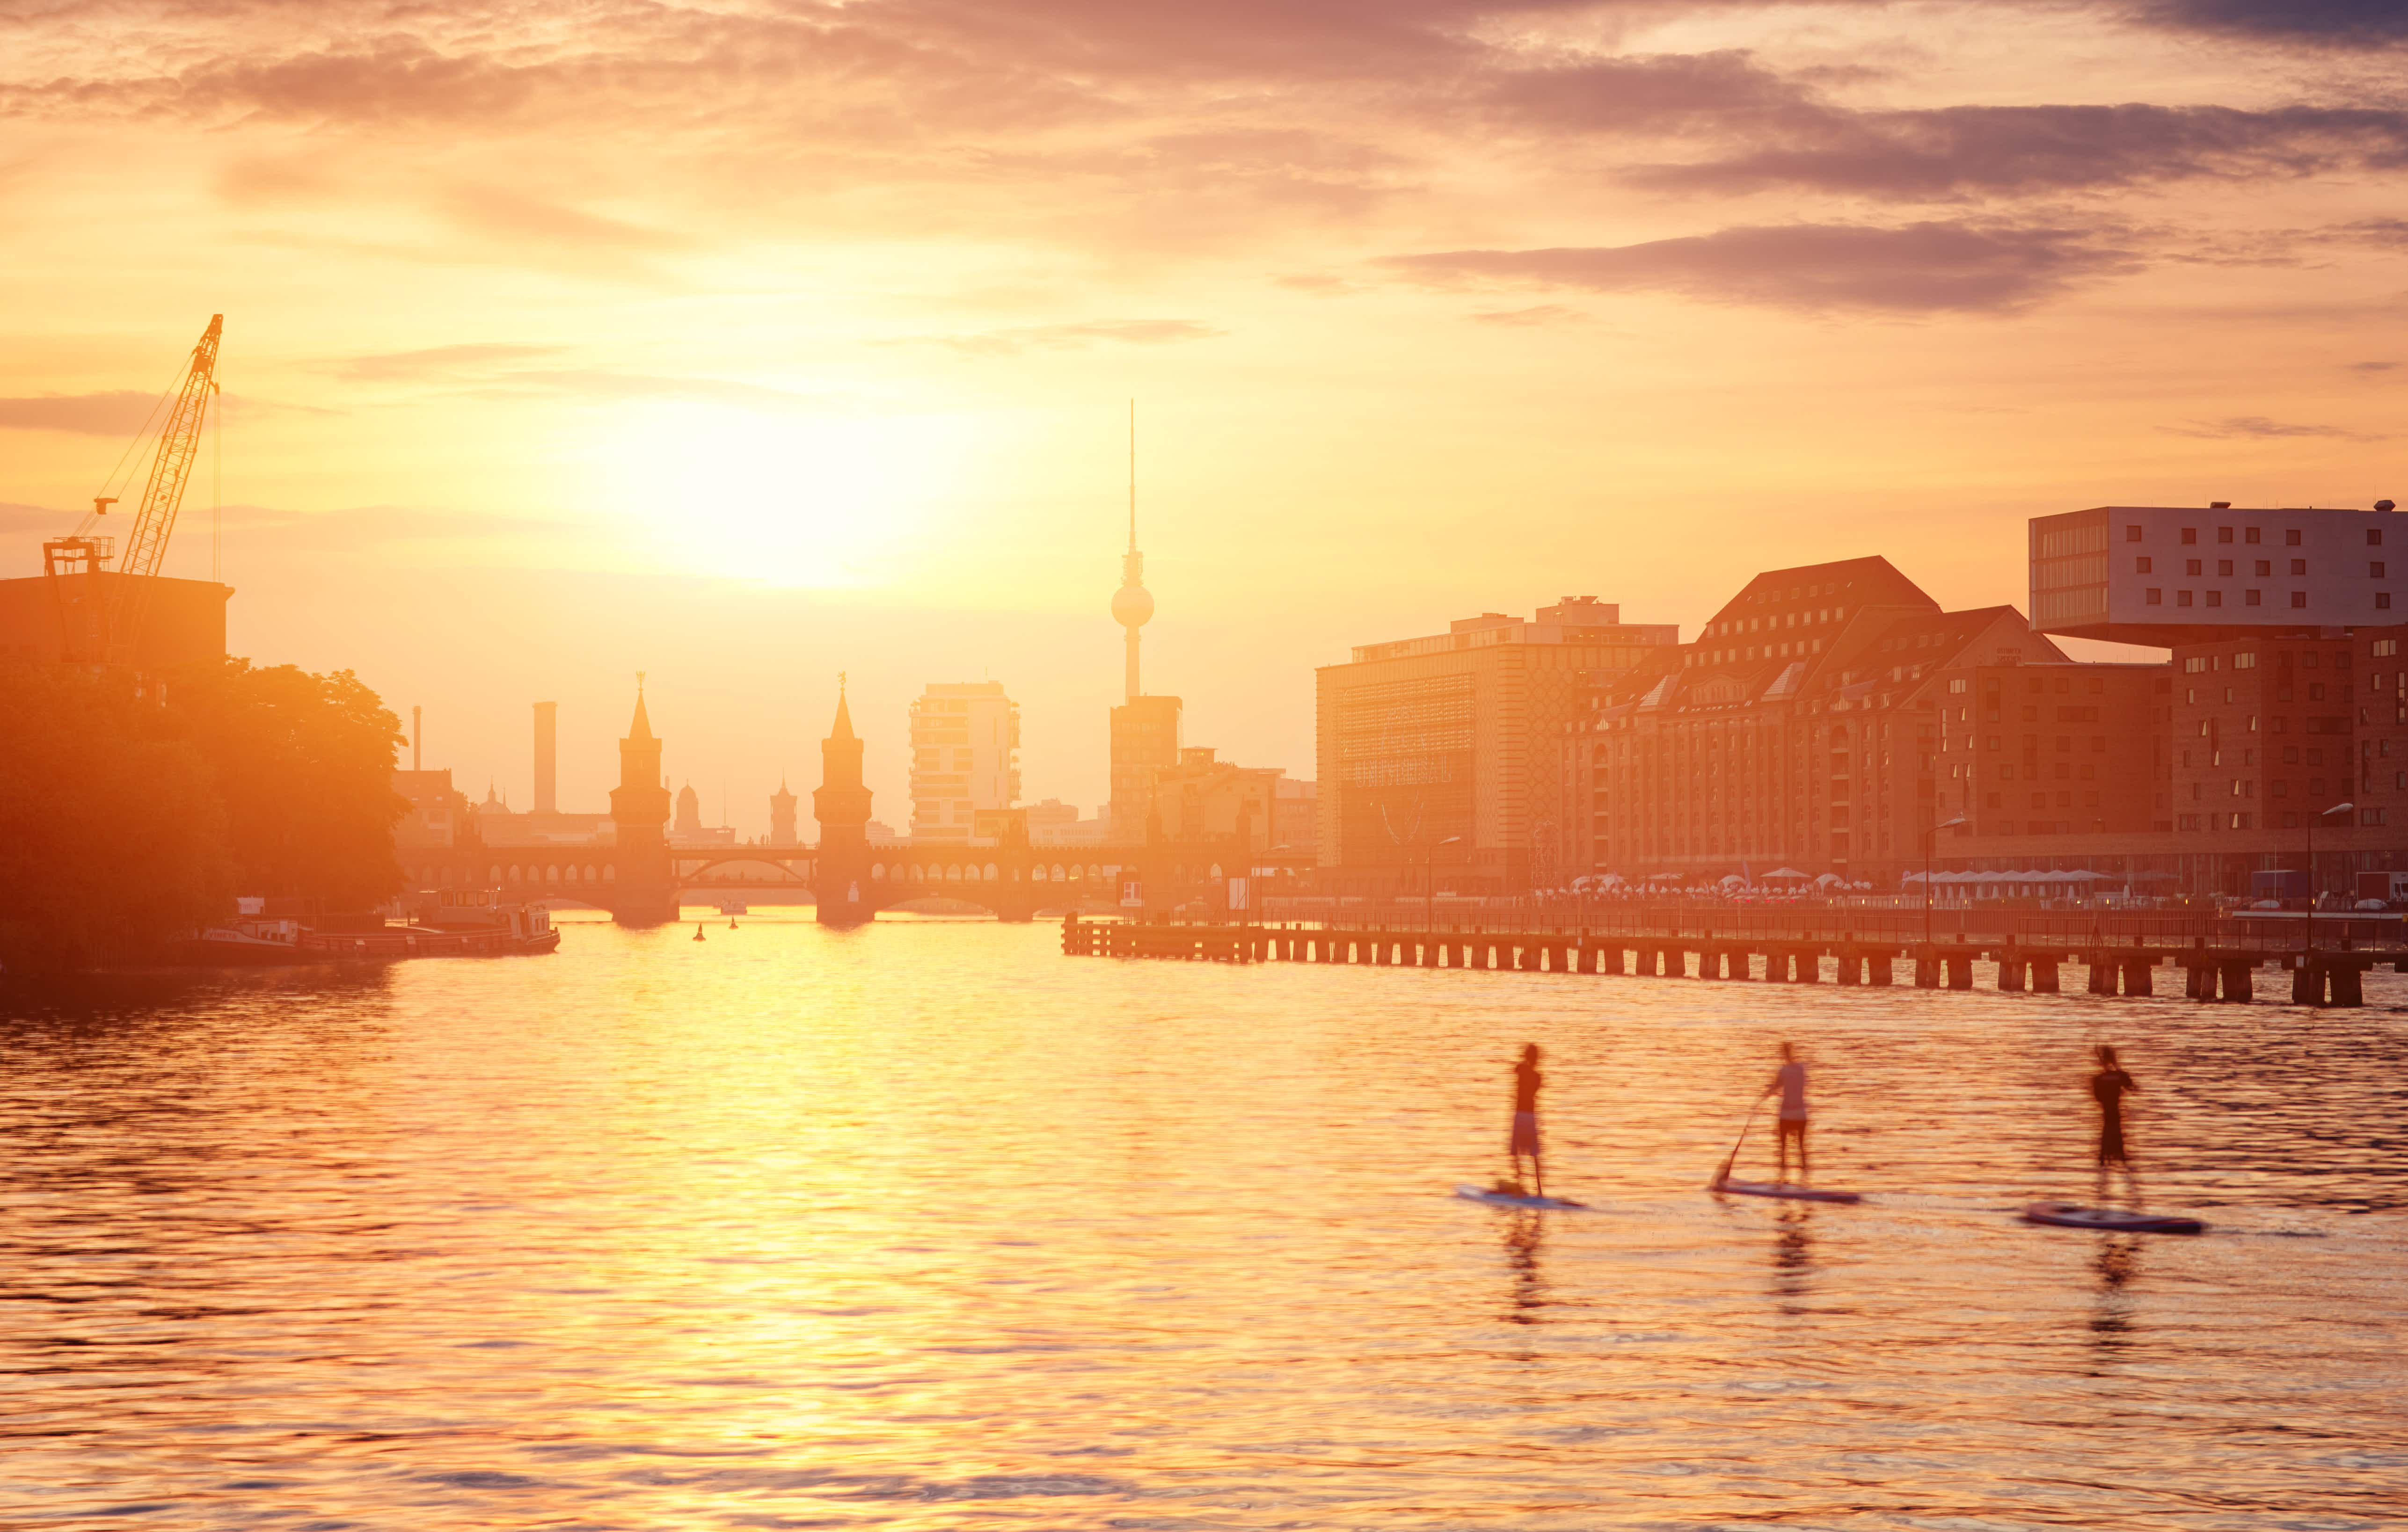 Finding the right mix of cosmopolitan-cool and physical activity can be hard, but Berlin has a great mix for teens and parents alike © Matthias Makarinus / Getty Images